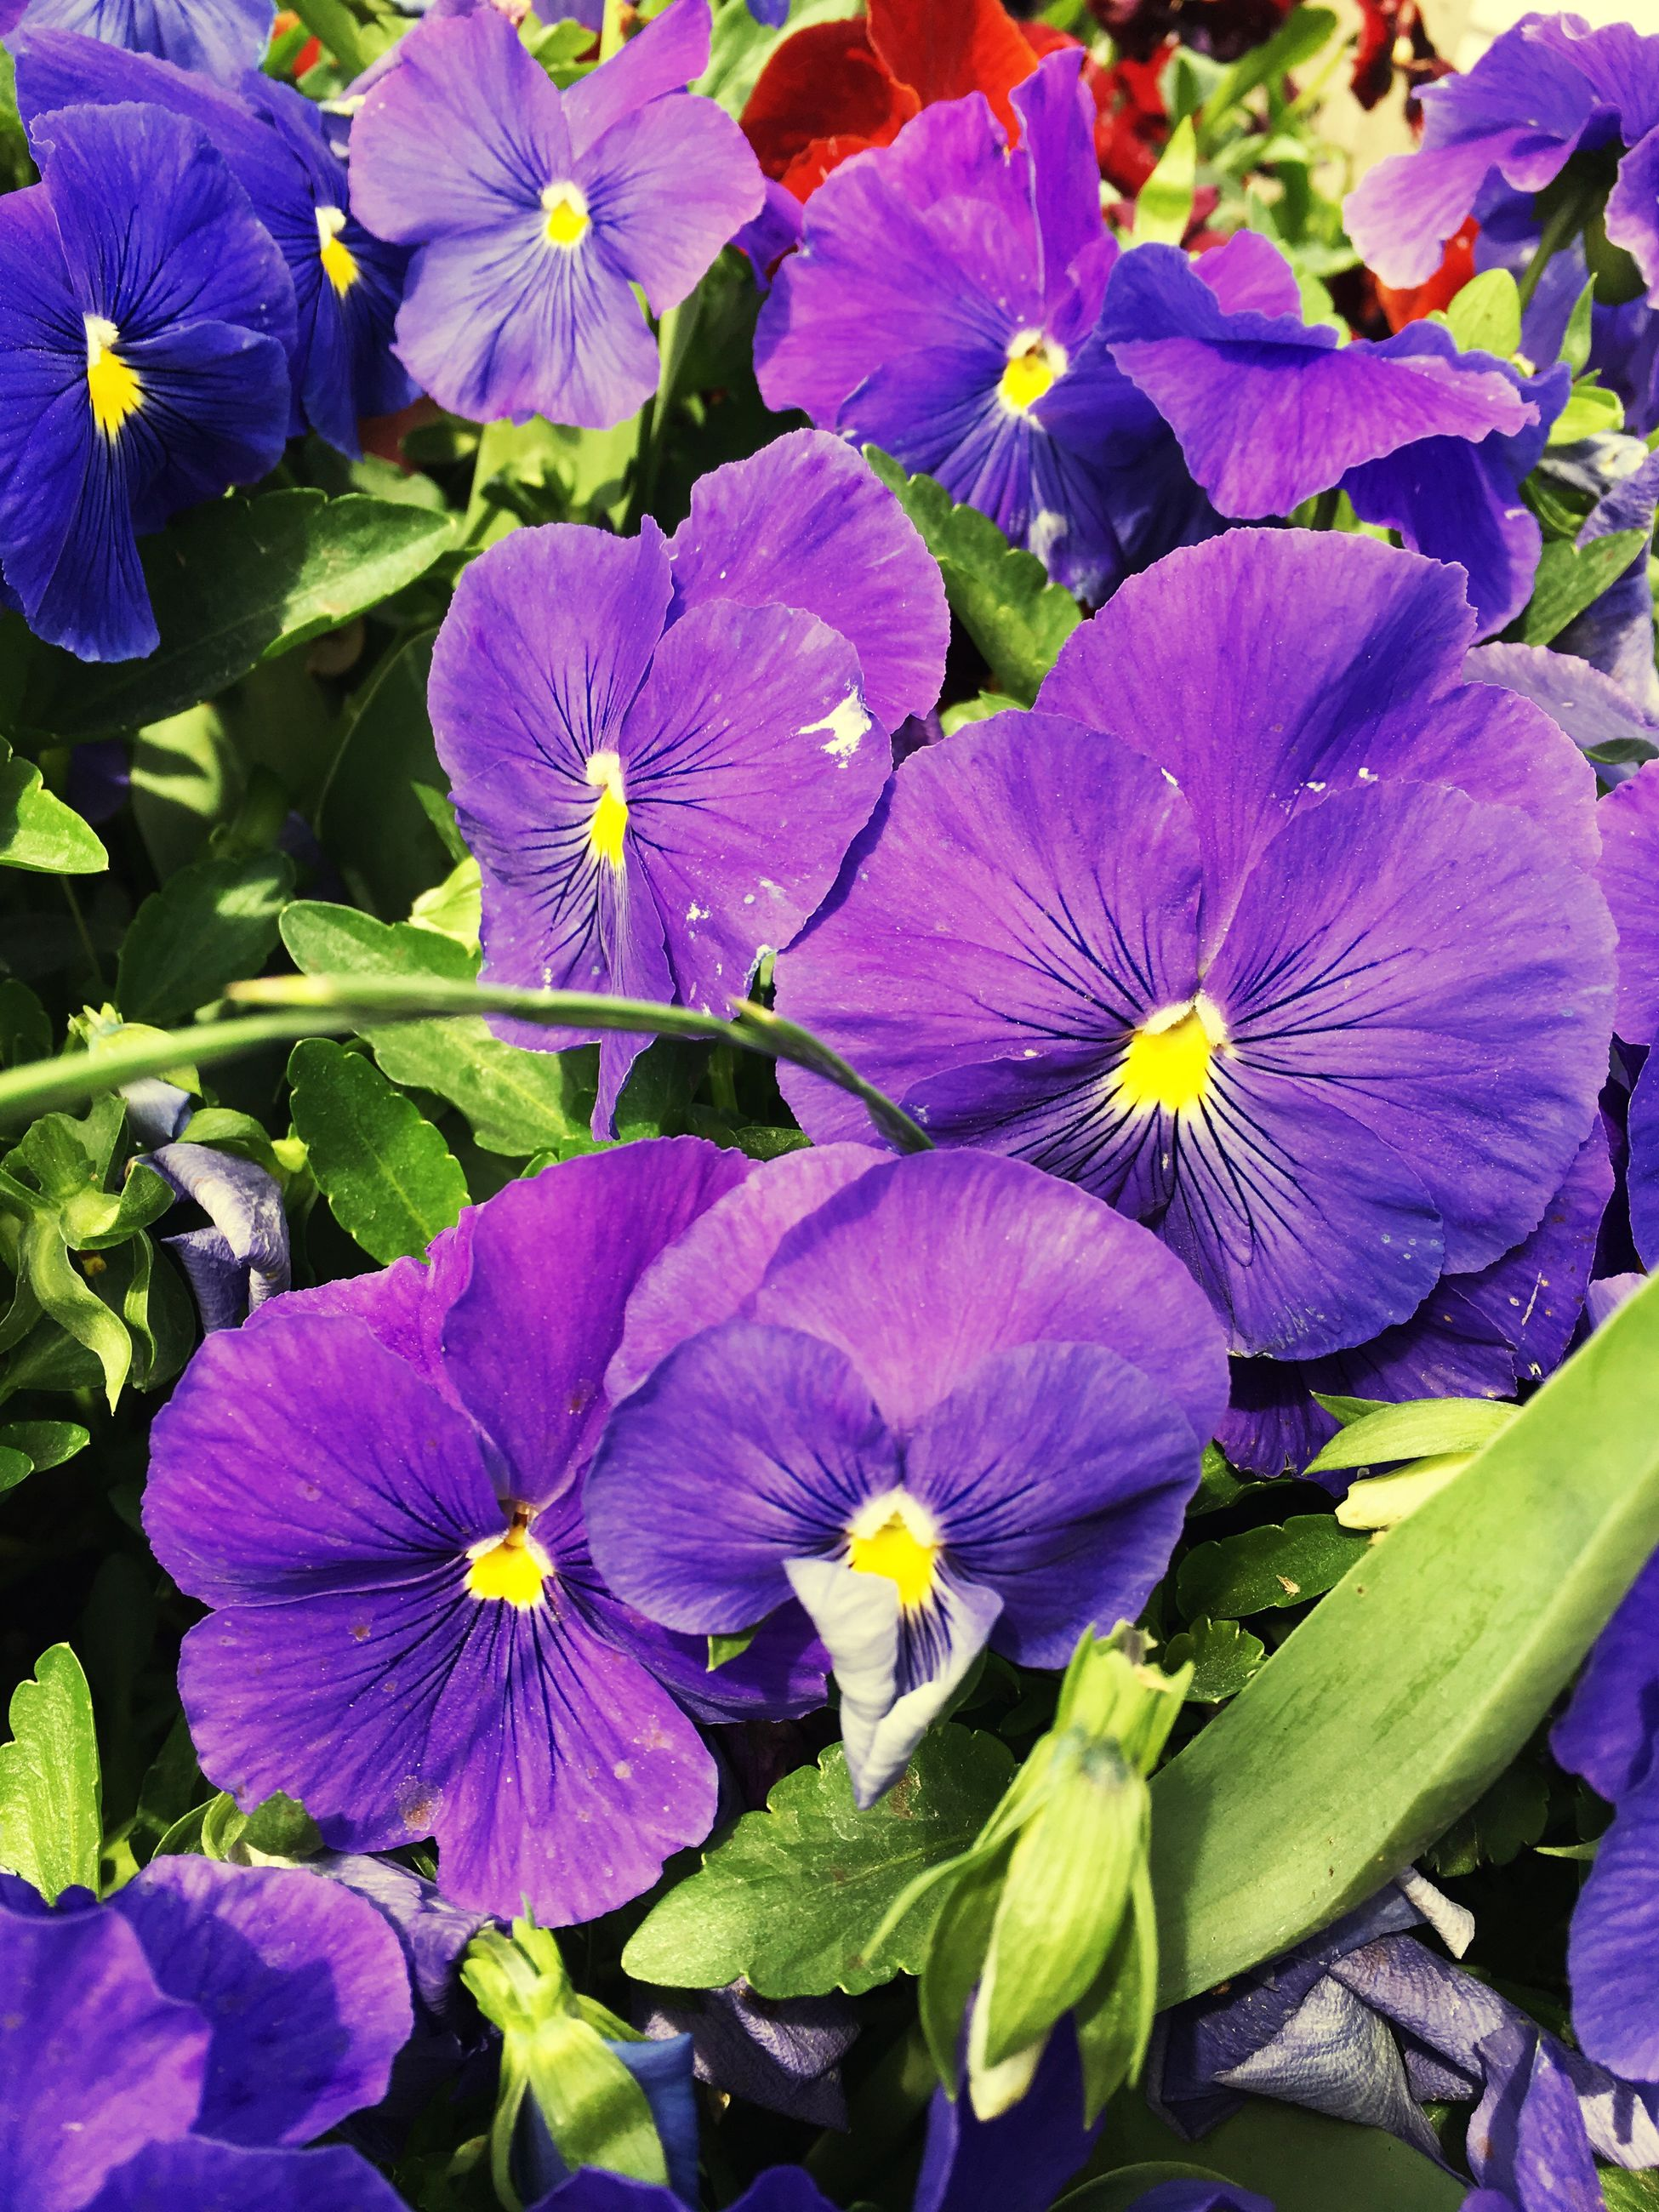 flower, purple, petal, beauty in nature, growth, fragility, freshness, outdoors, nature, no people, day, flower head, pansy, plant, blooming, close-up, petunia